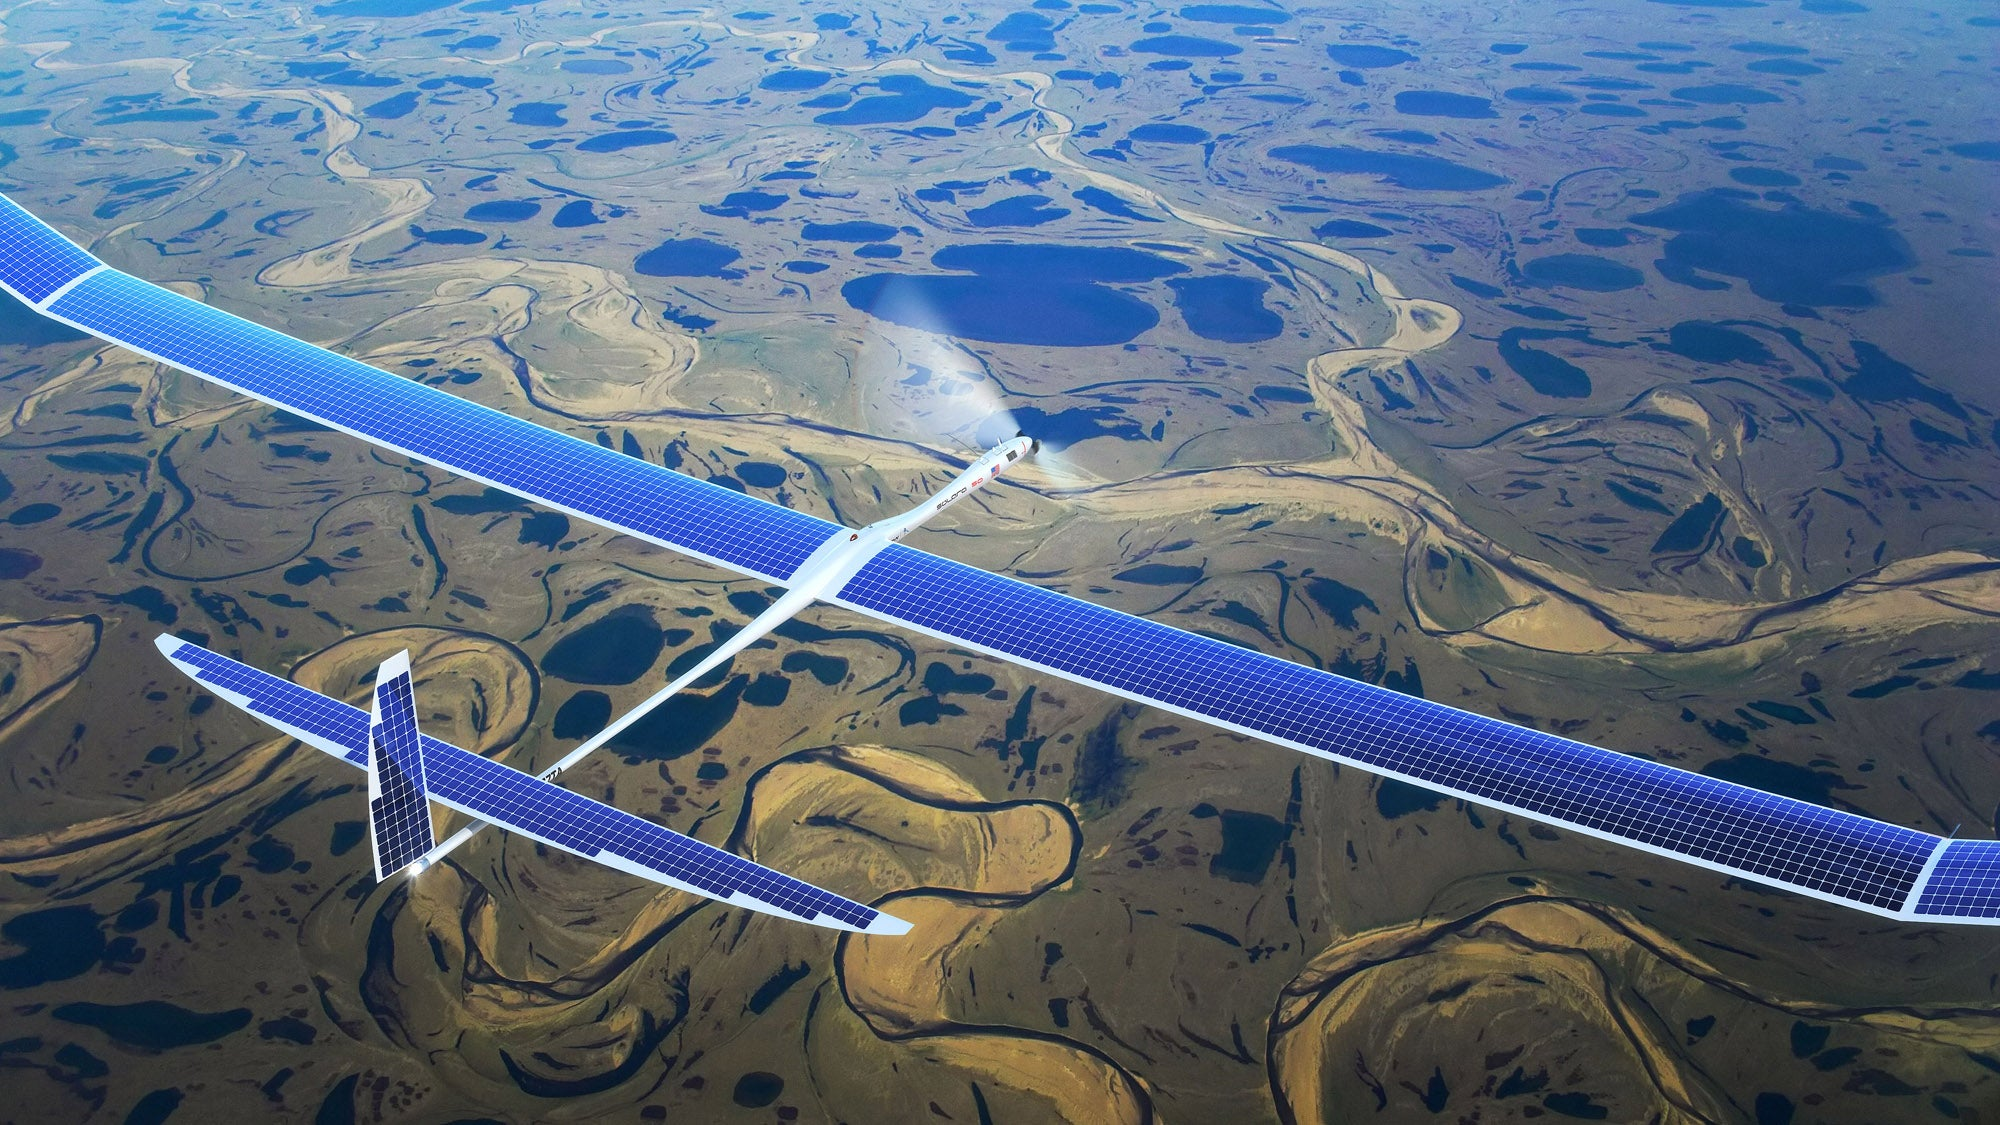 Google's High-Flying Internet Drone Crashed In New Mexico Weeks Ago